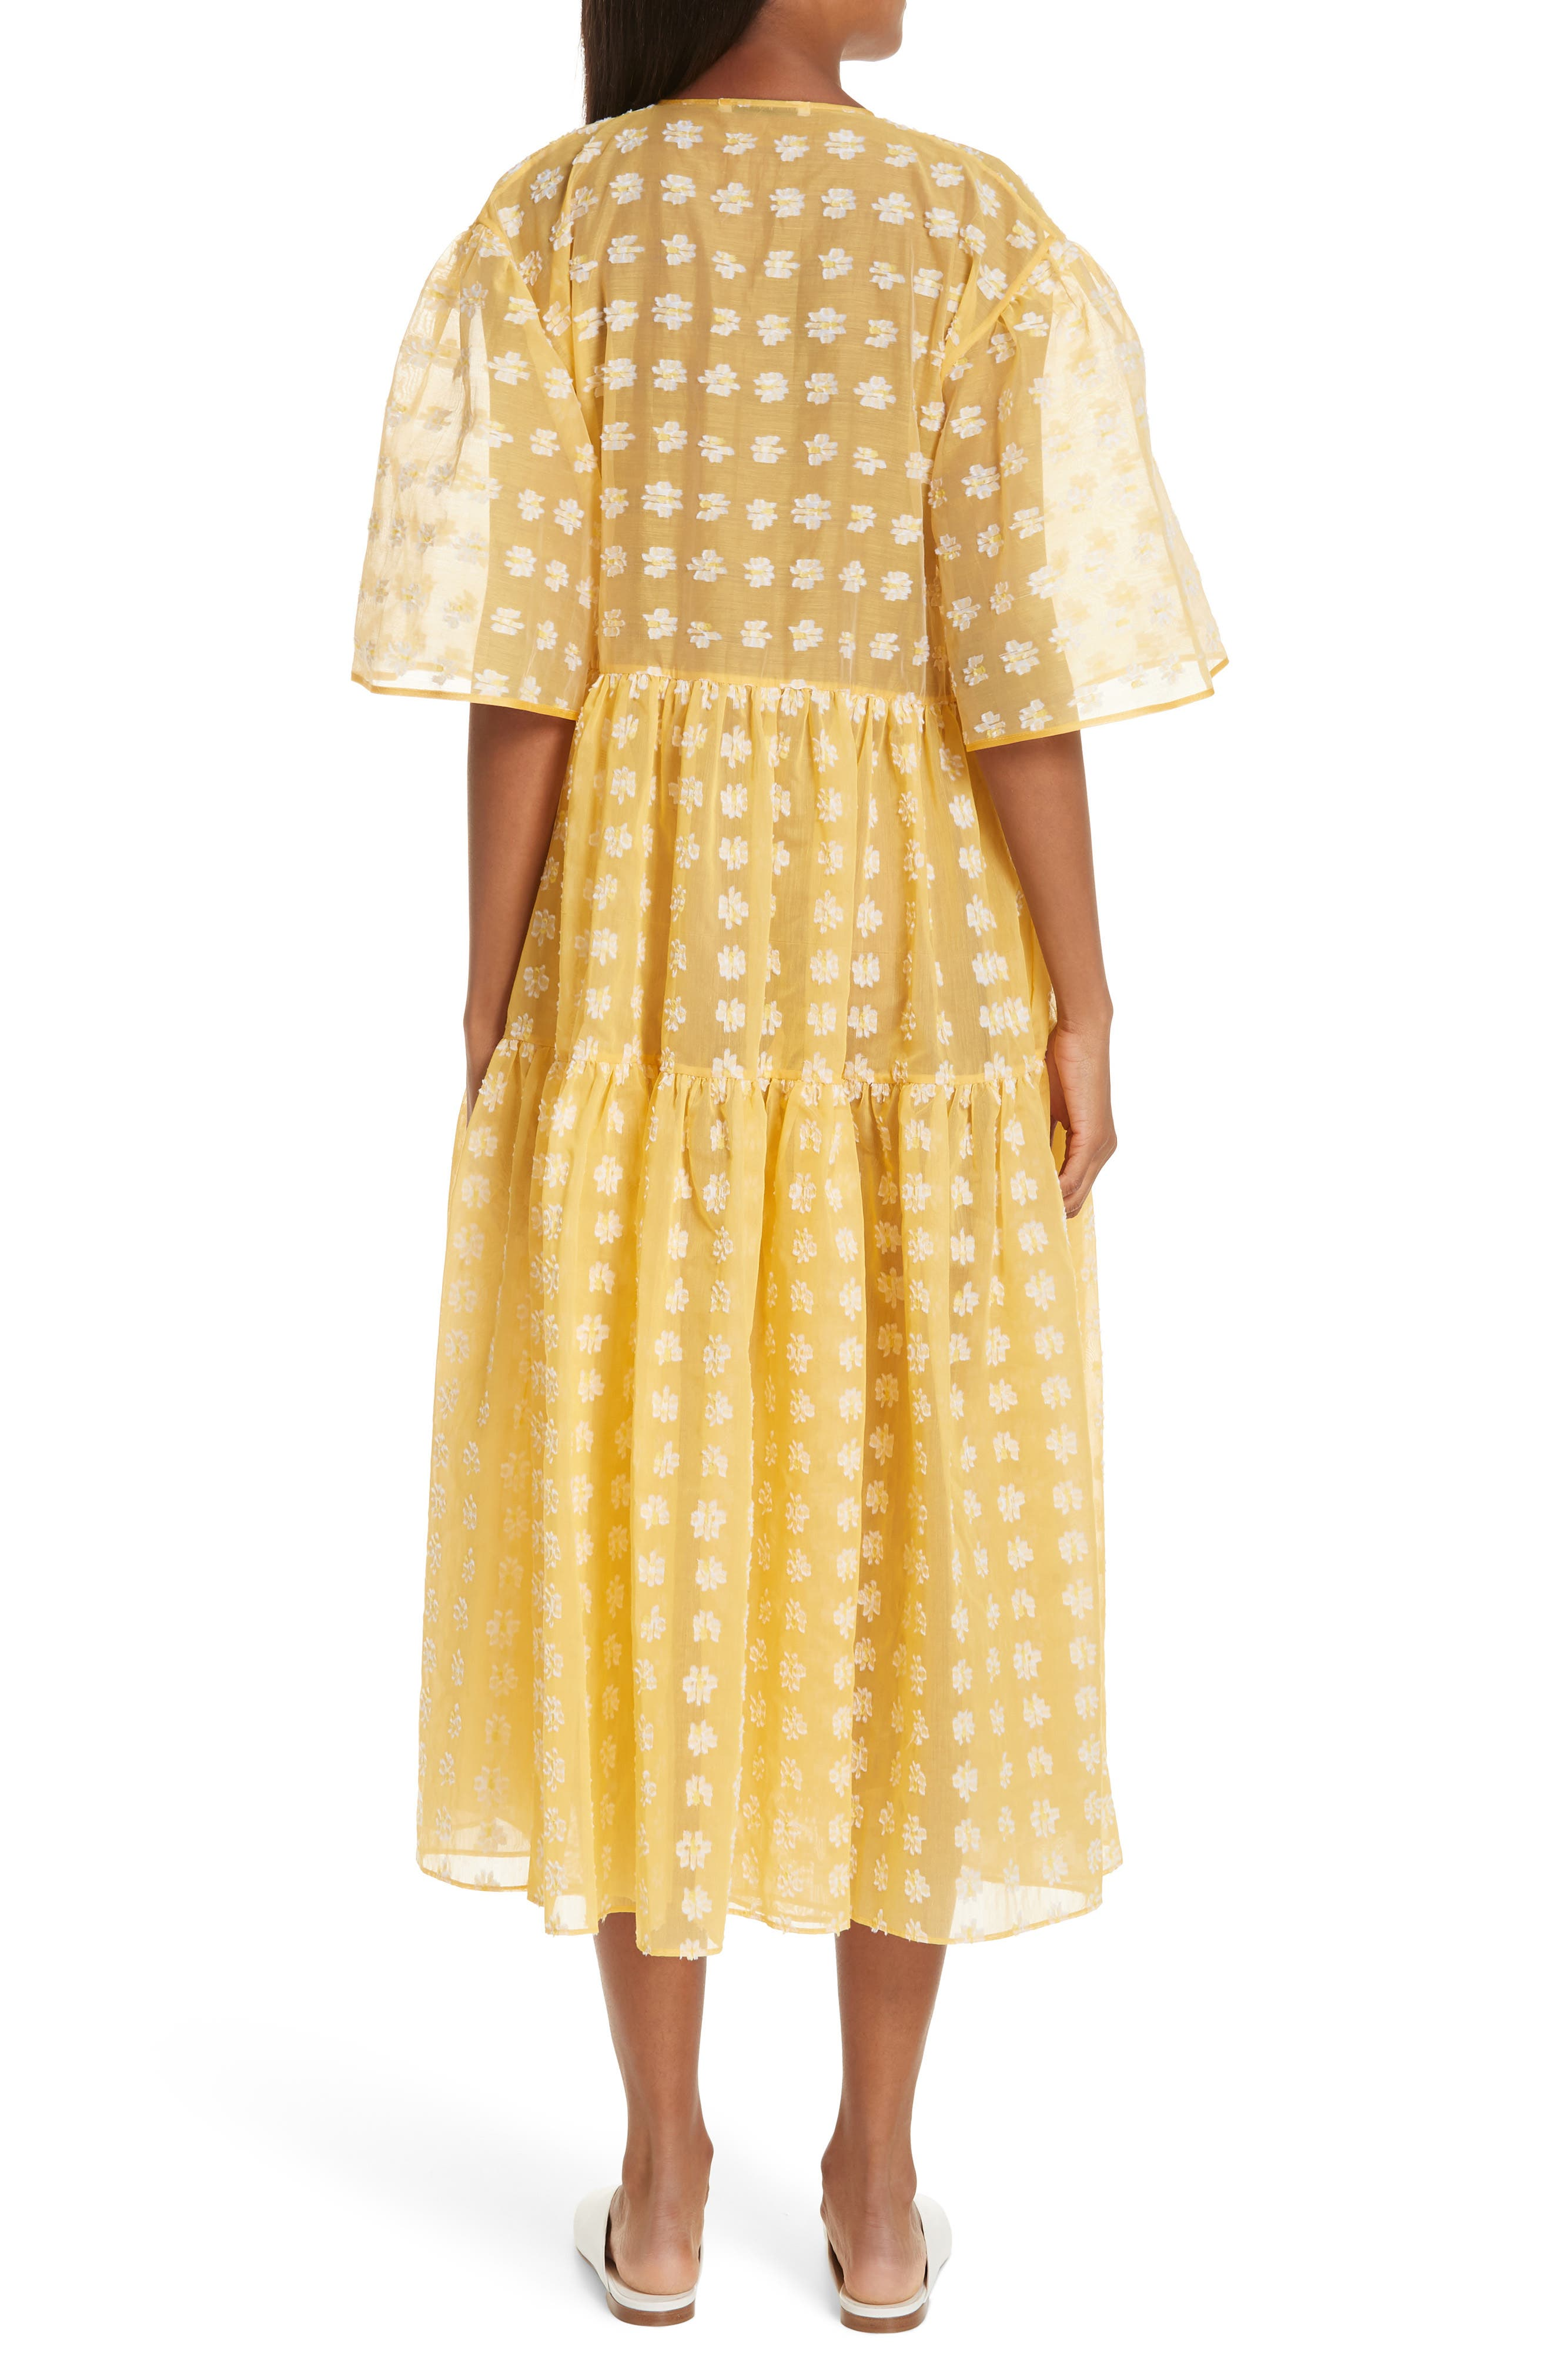 CECILIE BAHNSEN Patricia Wrap Dress in Black/ Yellow